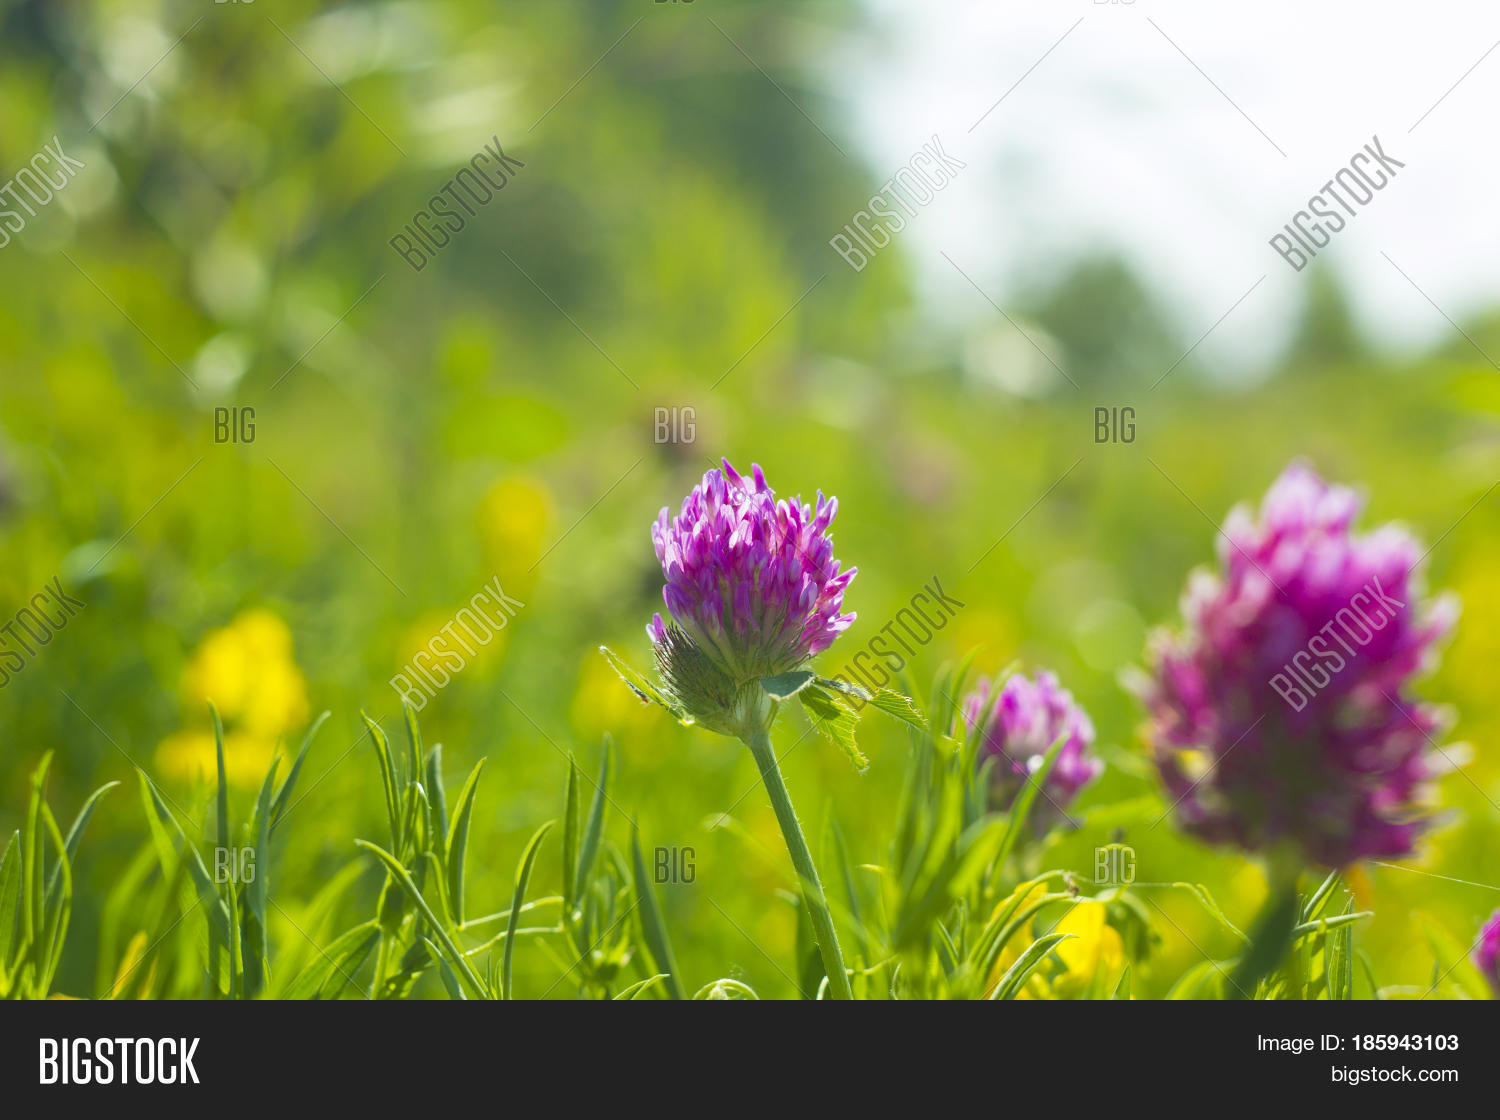 Summer Field Yellow Image Photo Free Trial Bigstock